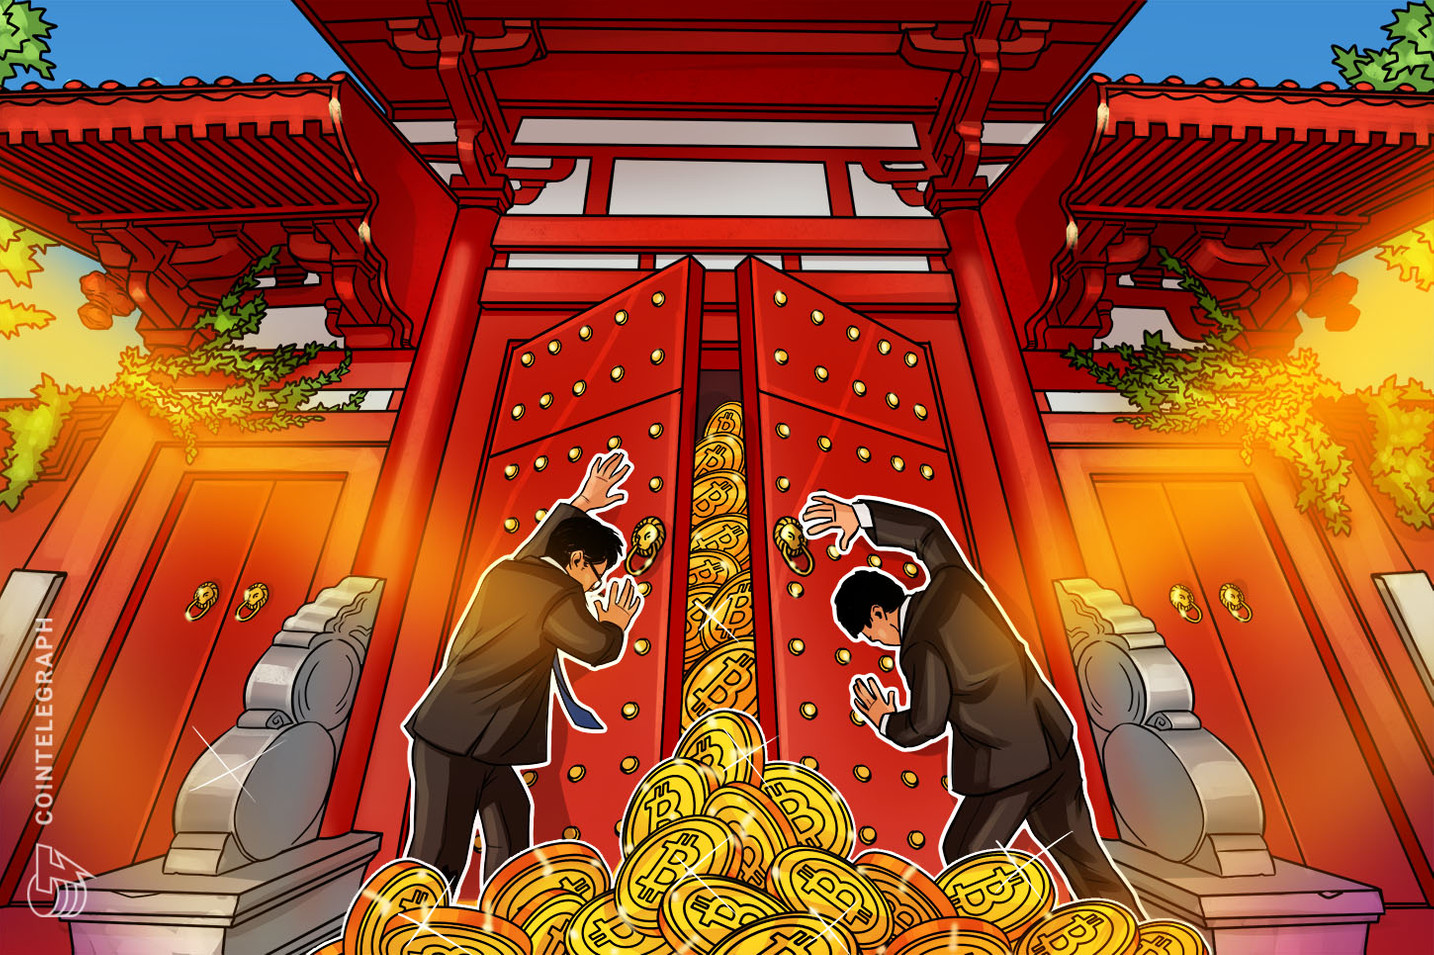 China could shut down Bitcoin for $7B a year, says Logica Capital chief strategist